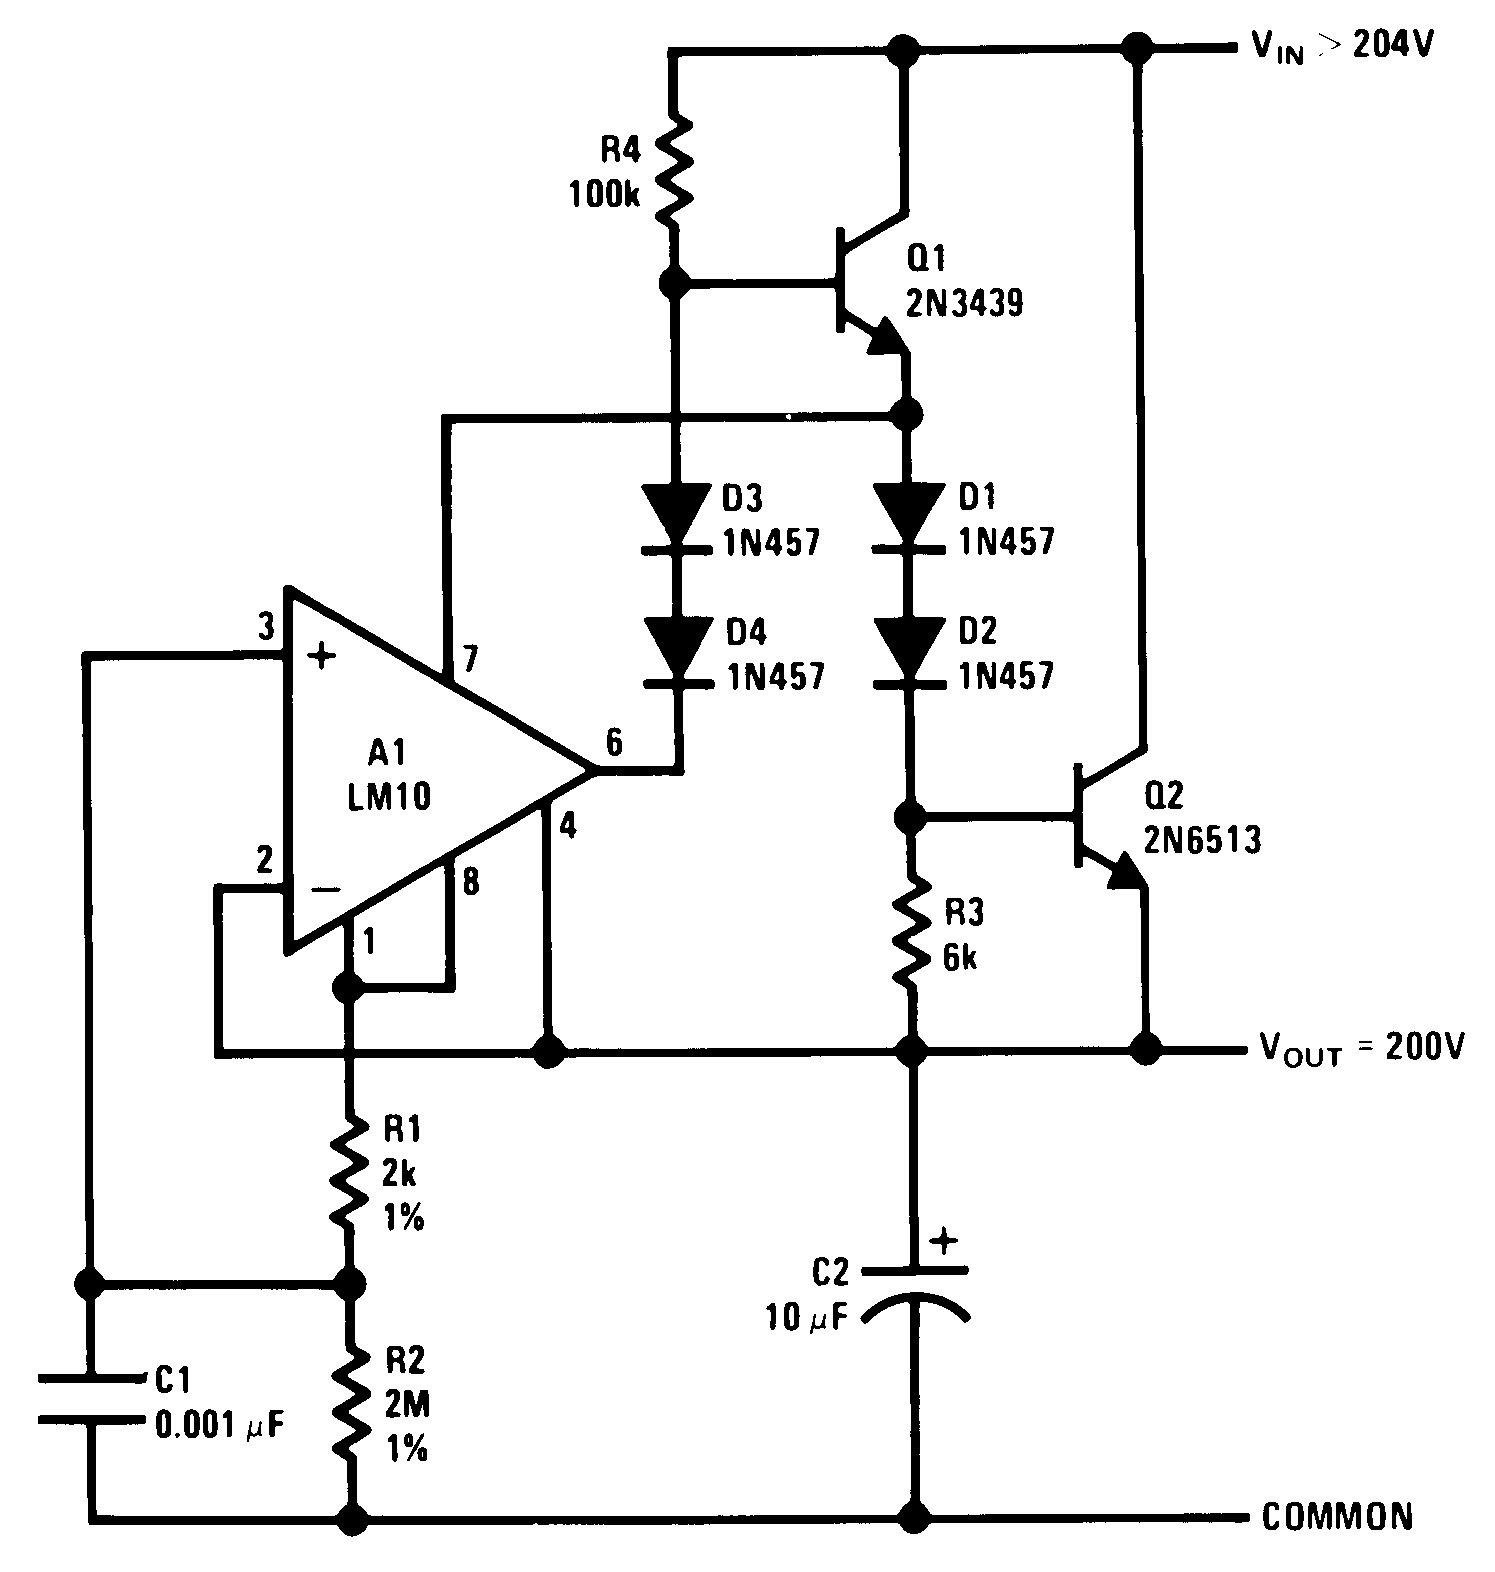 hight resolution of lm10 circuit